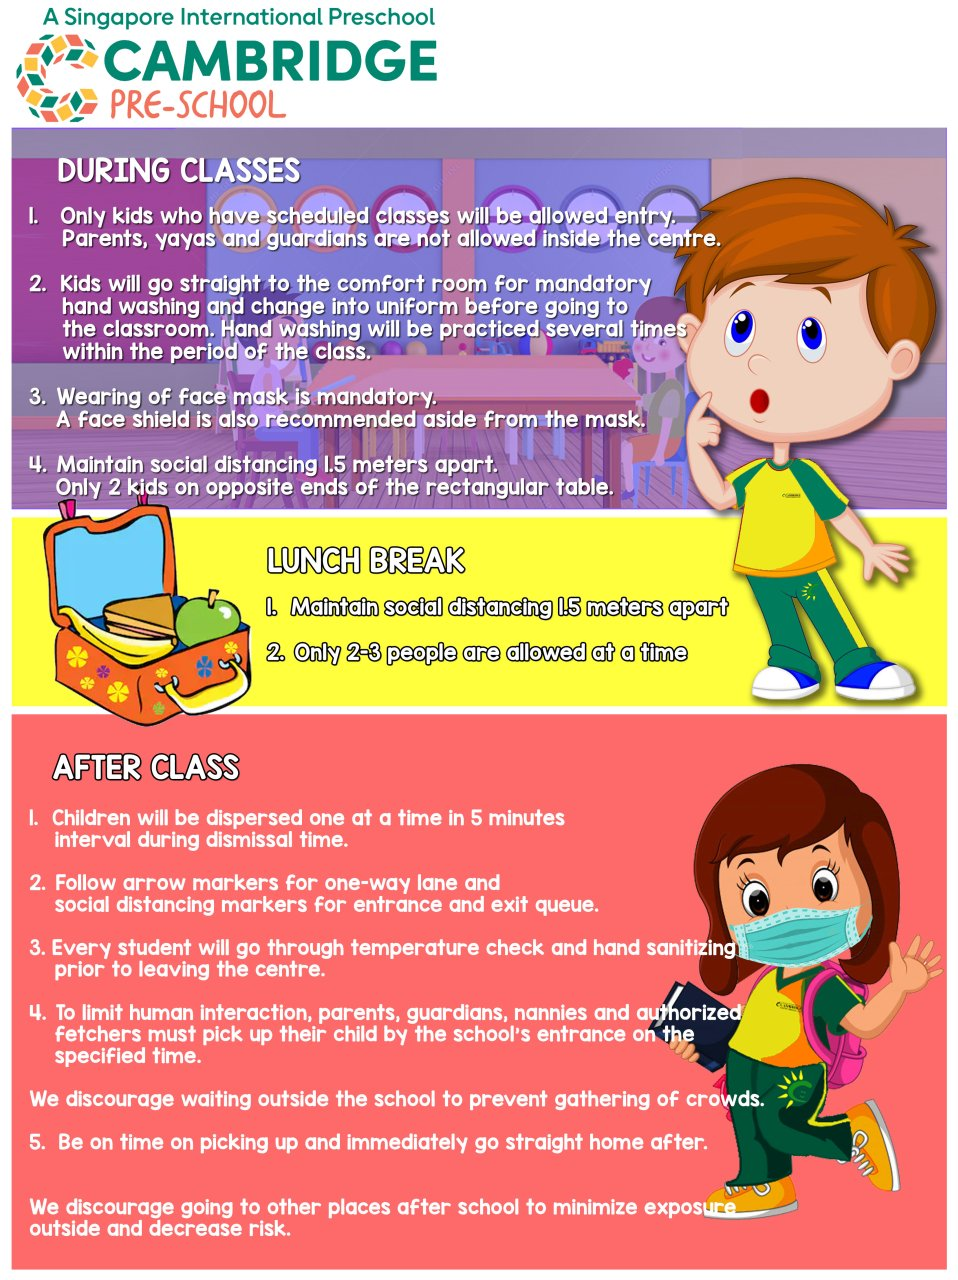 Cambridge Child Development Centre - Health and Safety Protocols for Face-to-Face Classes 2